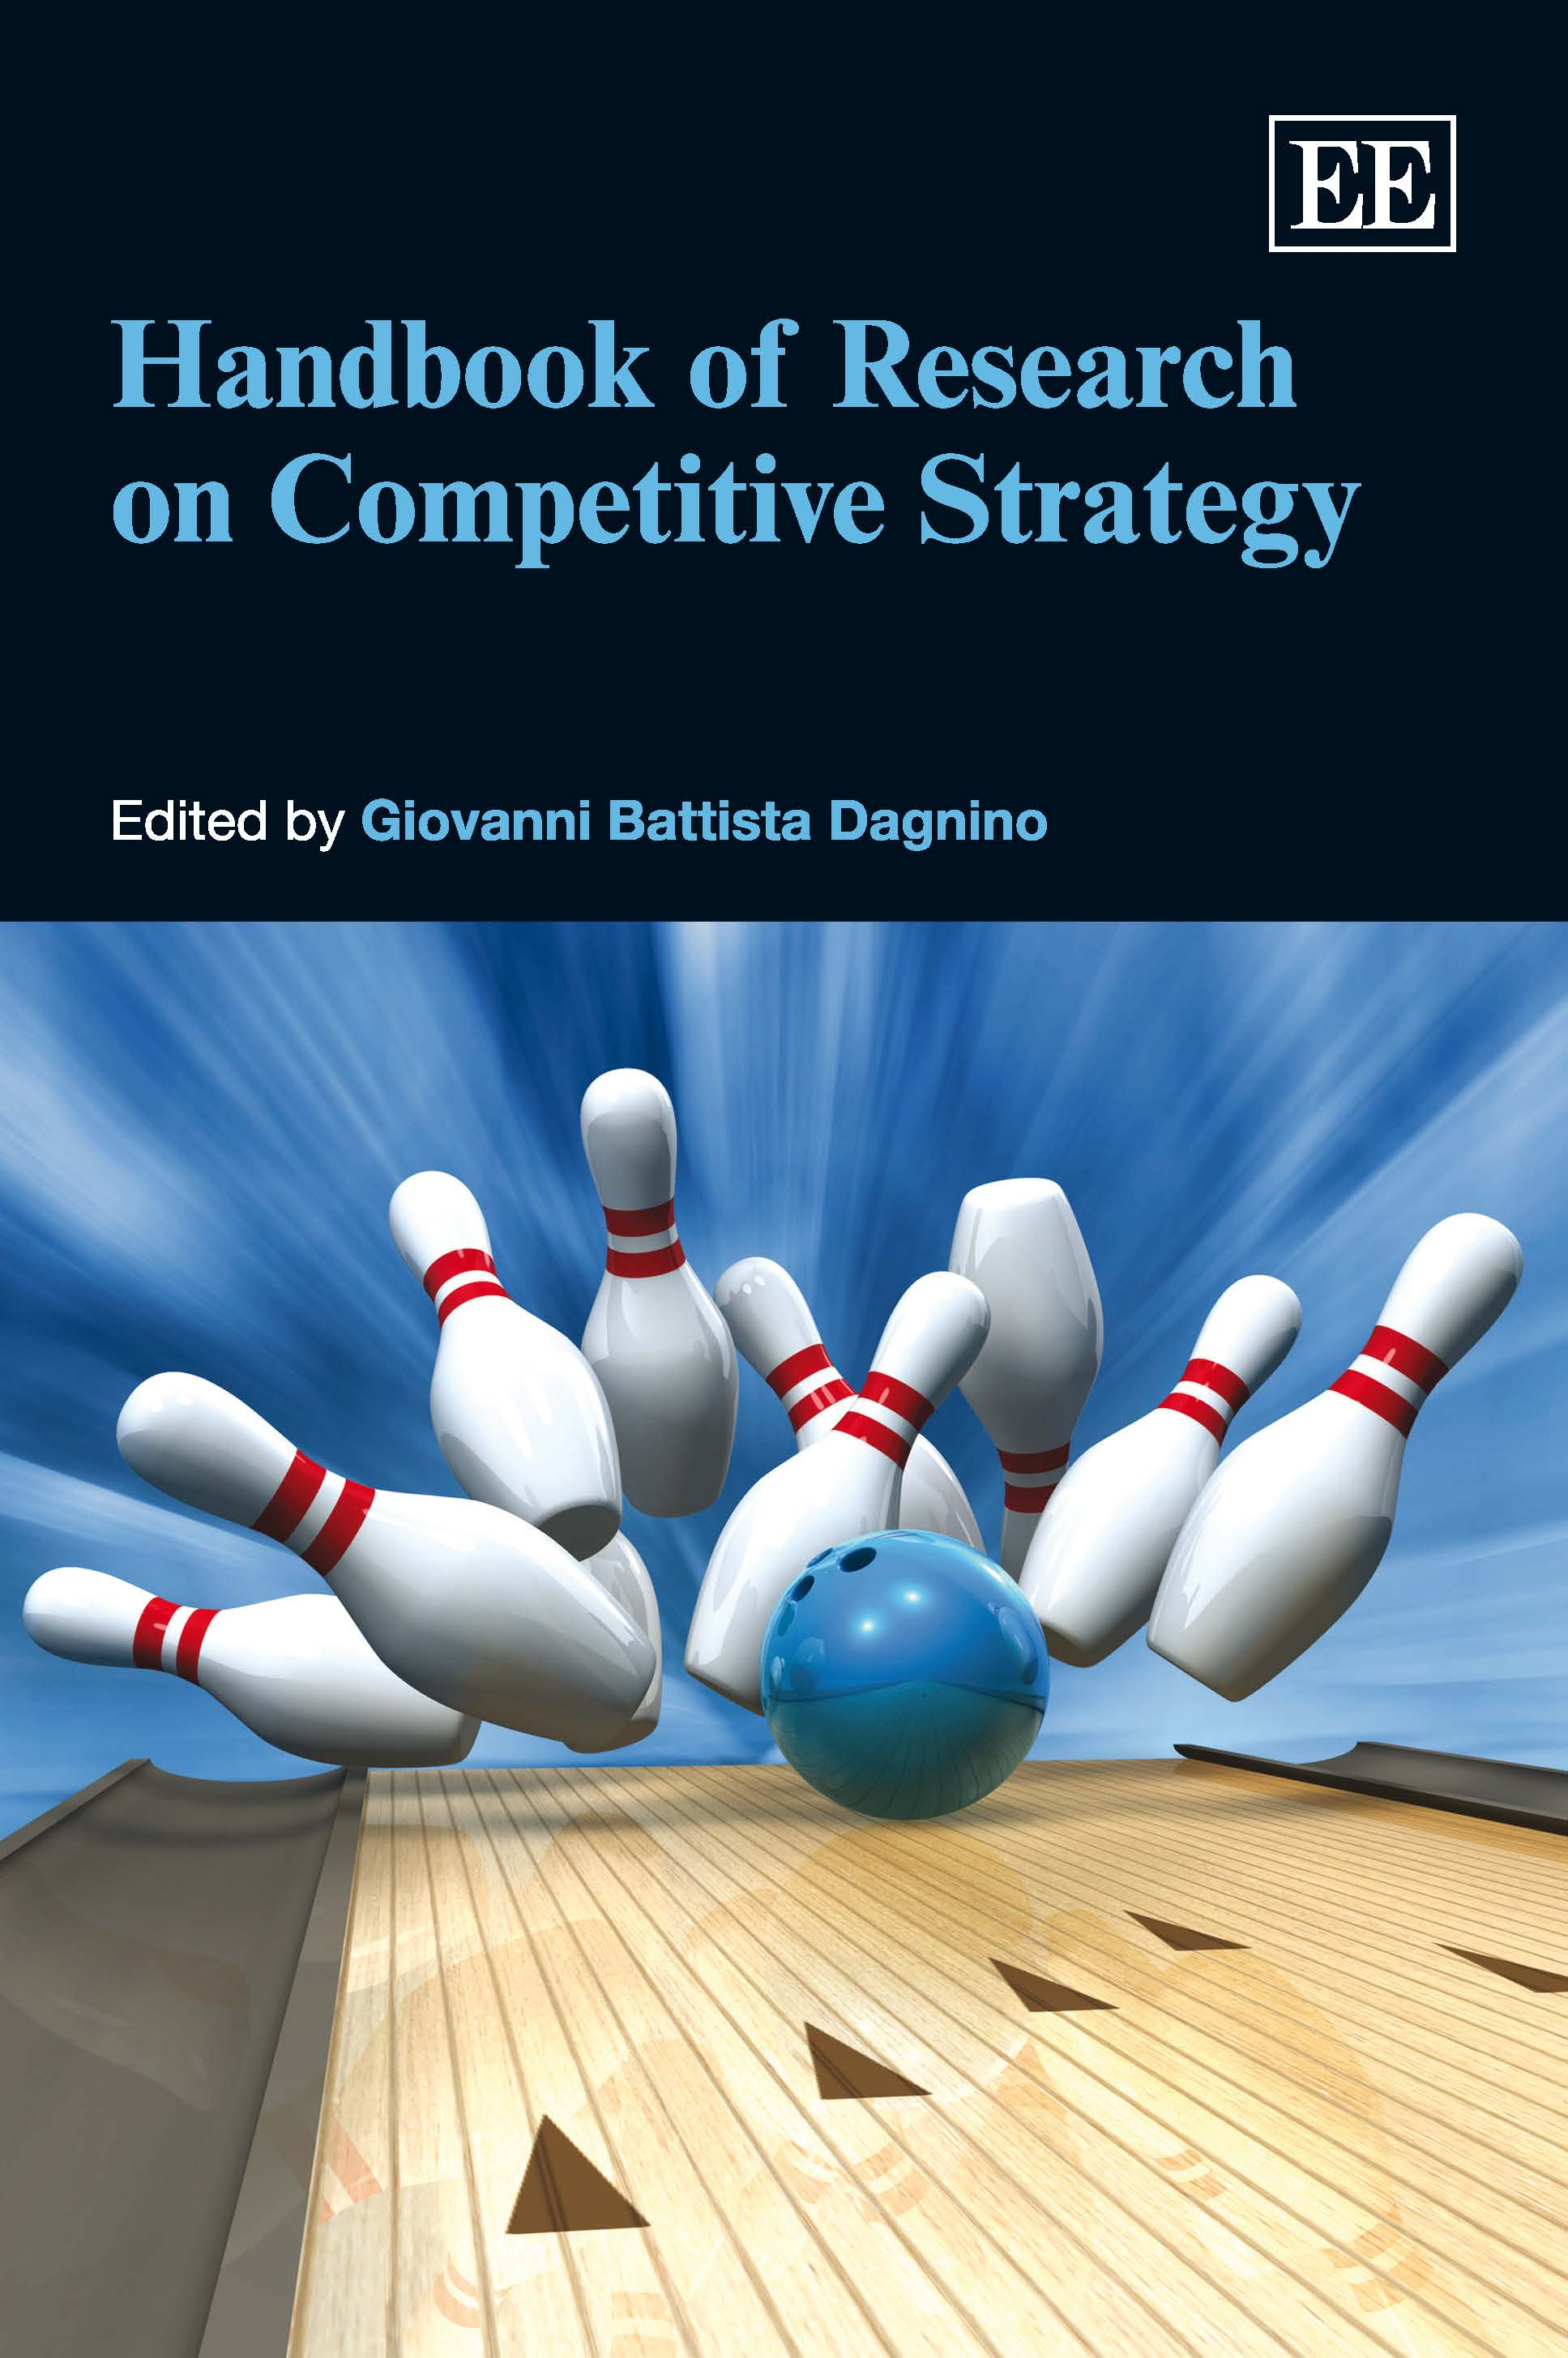 Download Ebook Handbook of Research on Competitive Strategy by Giovanni Battista Dagnino Pdf